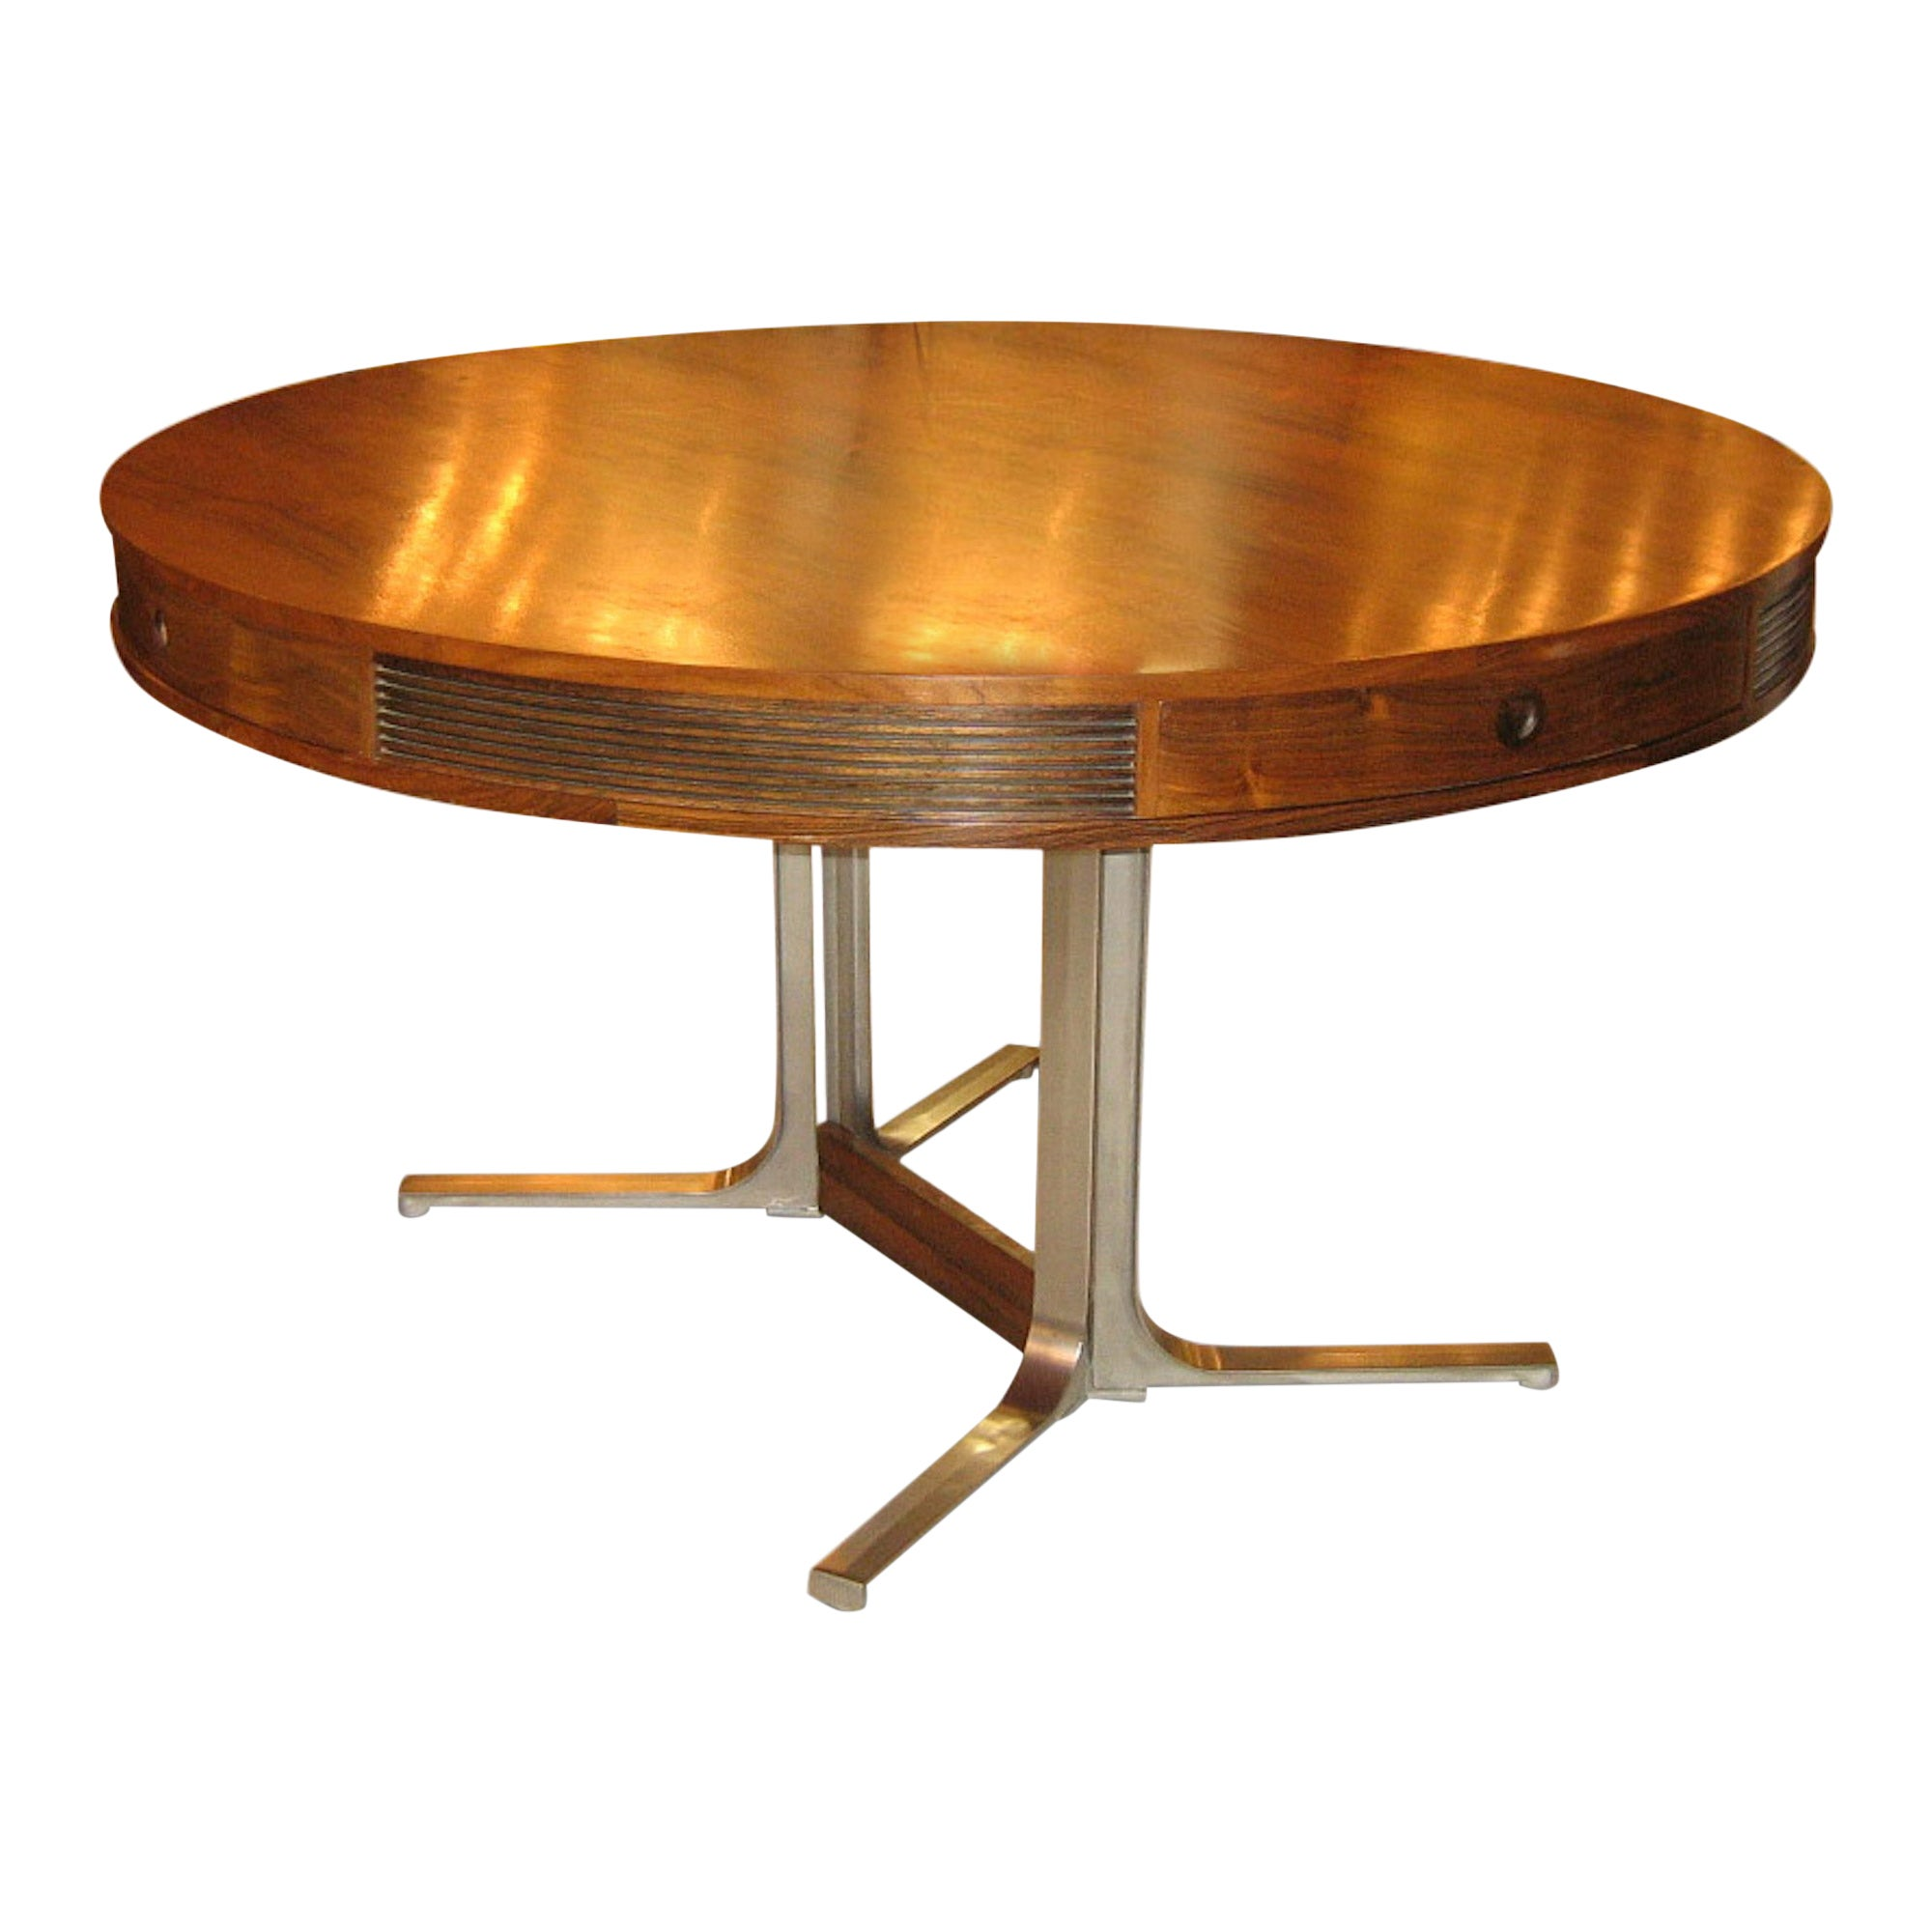 Midcentury 1960s Rosewood Dining Table by Robert Heritage